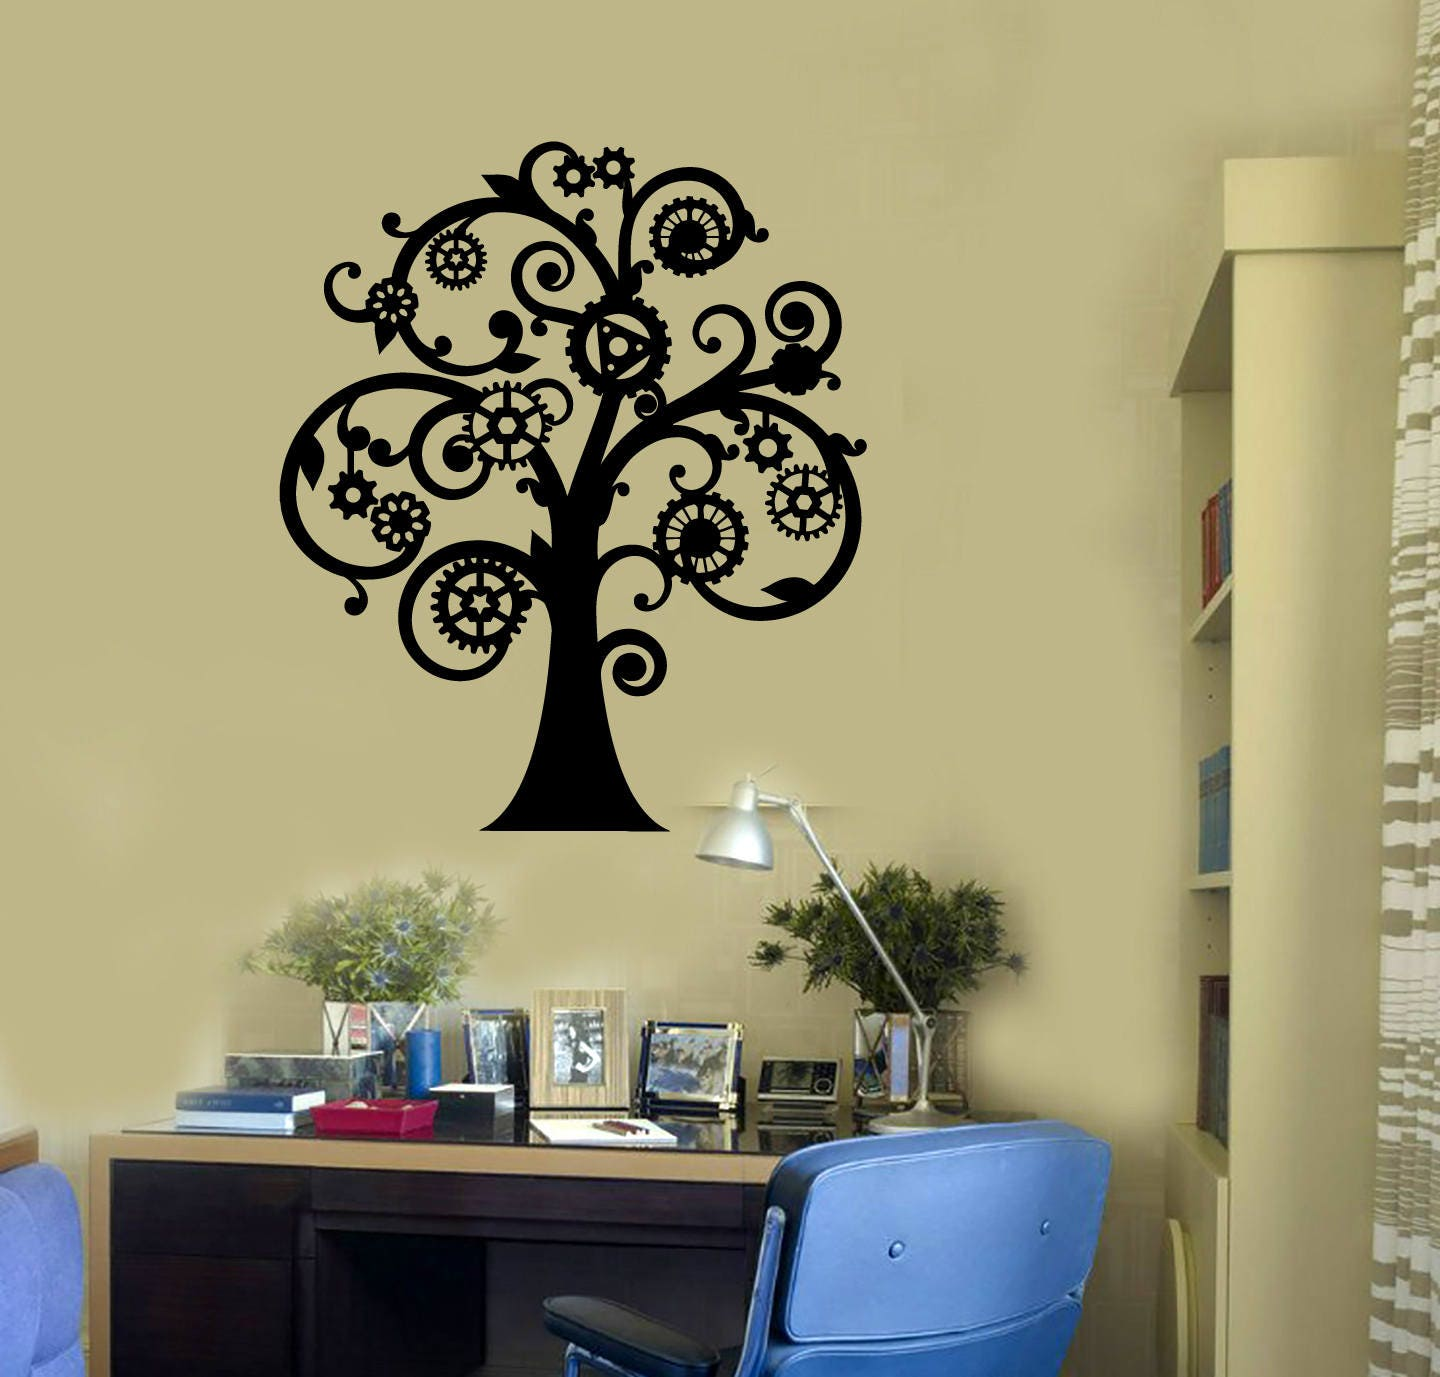 Vinyl Wall Decal Steampunk Tree Gears Creative Room Art